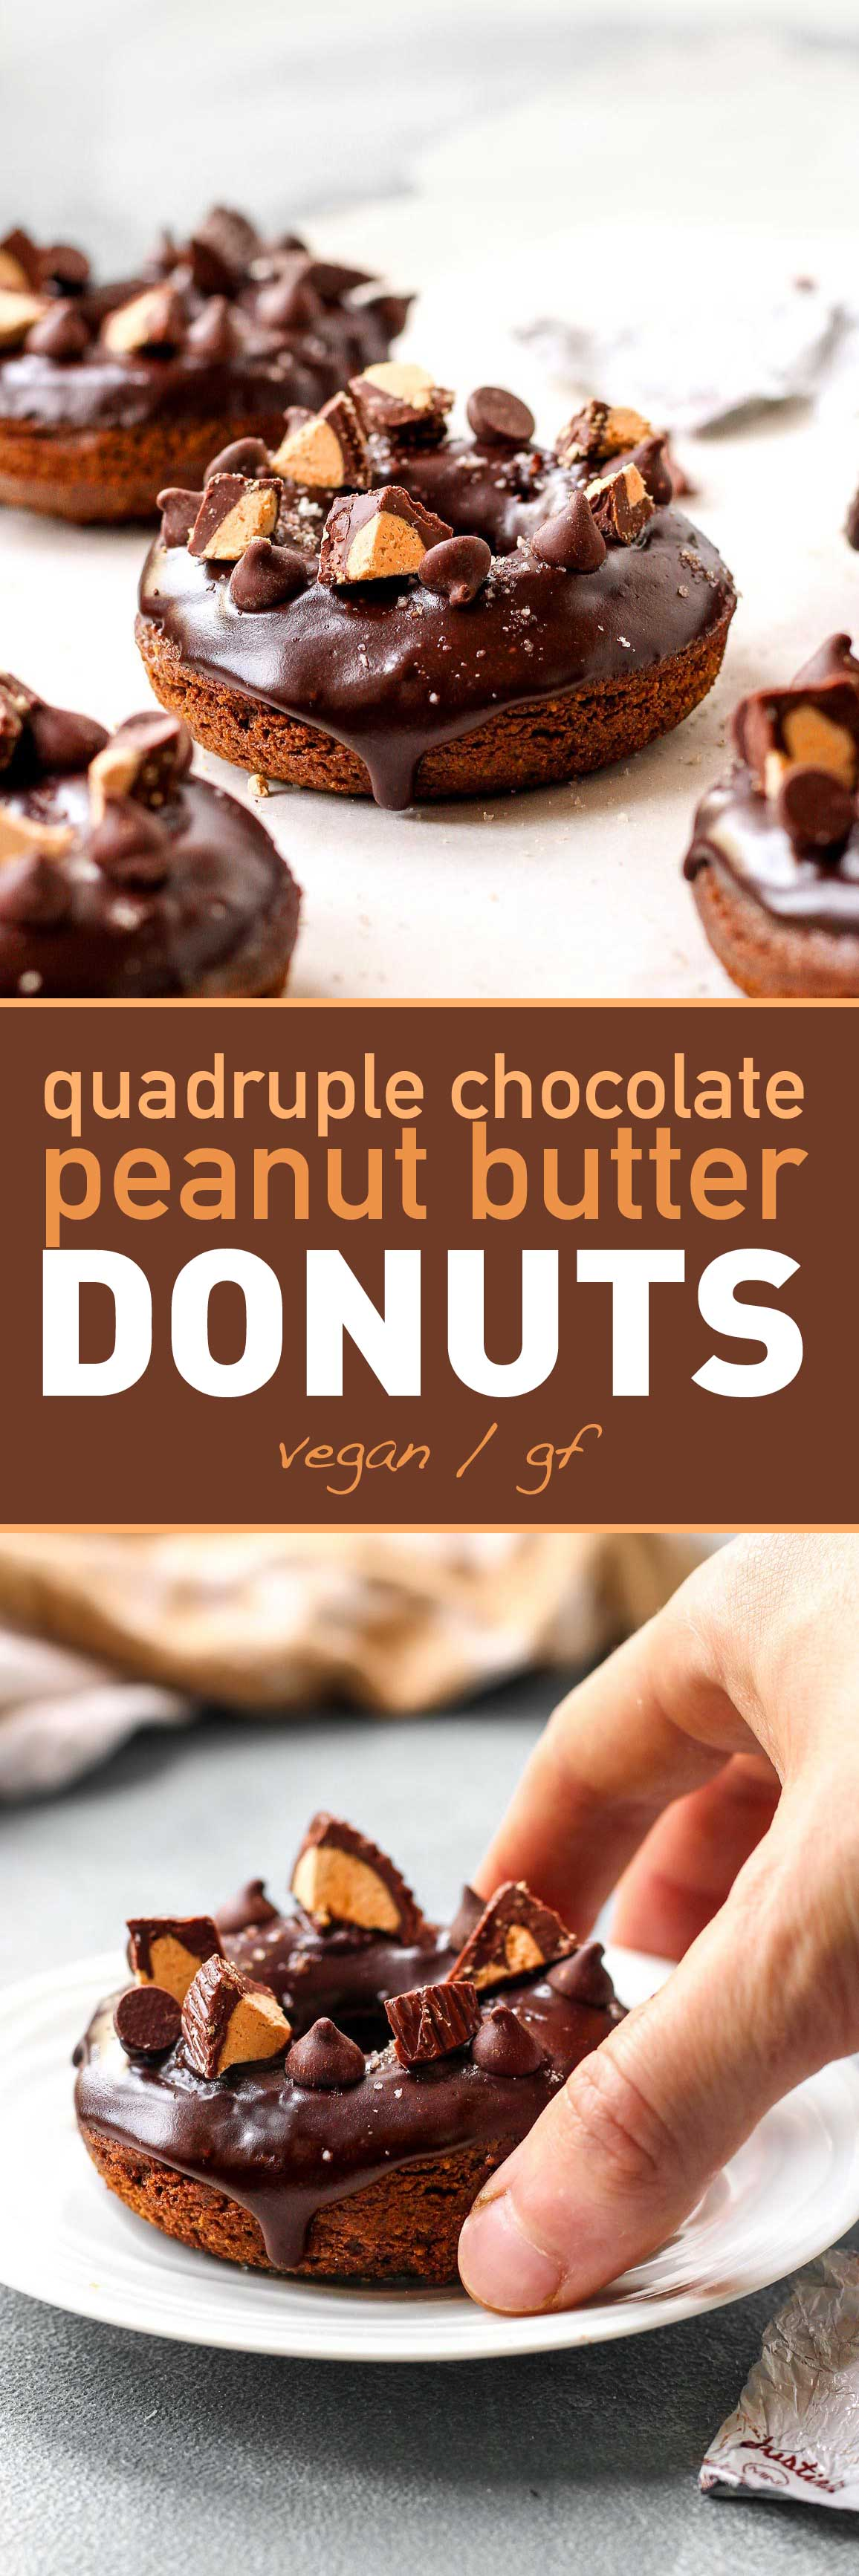 Quadruple Chocolate Peanut Butter Donuts